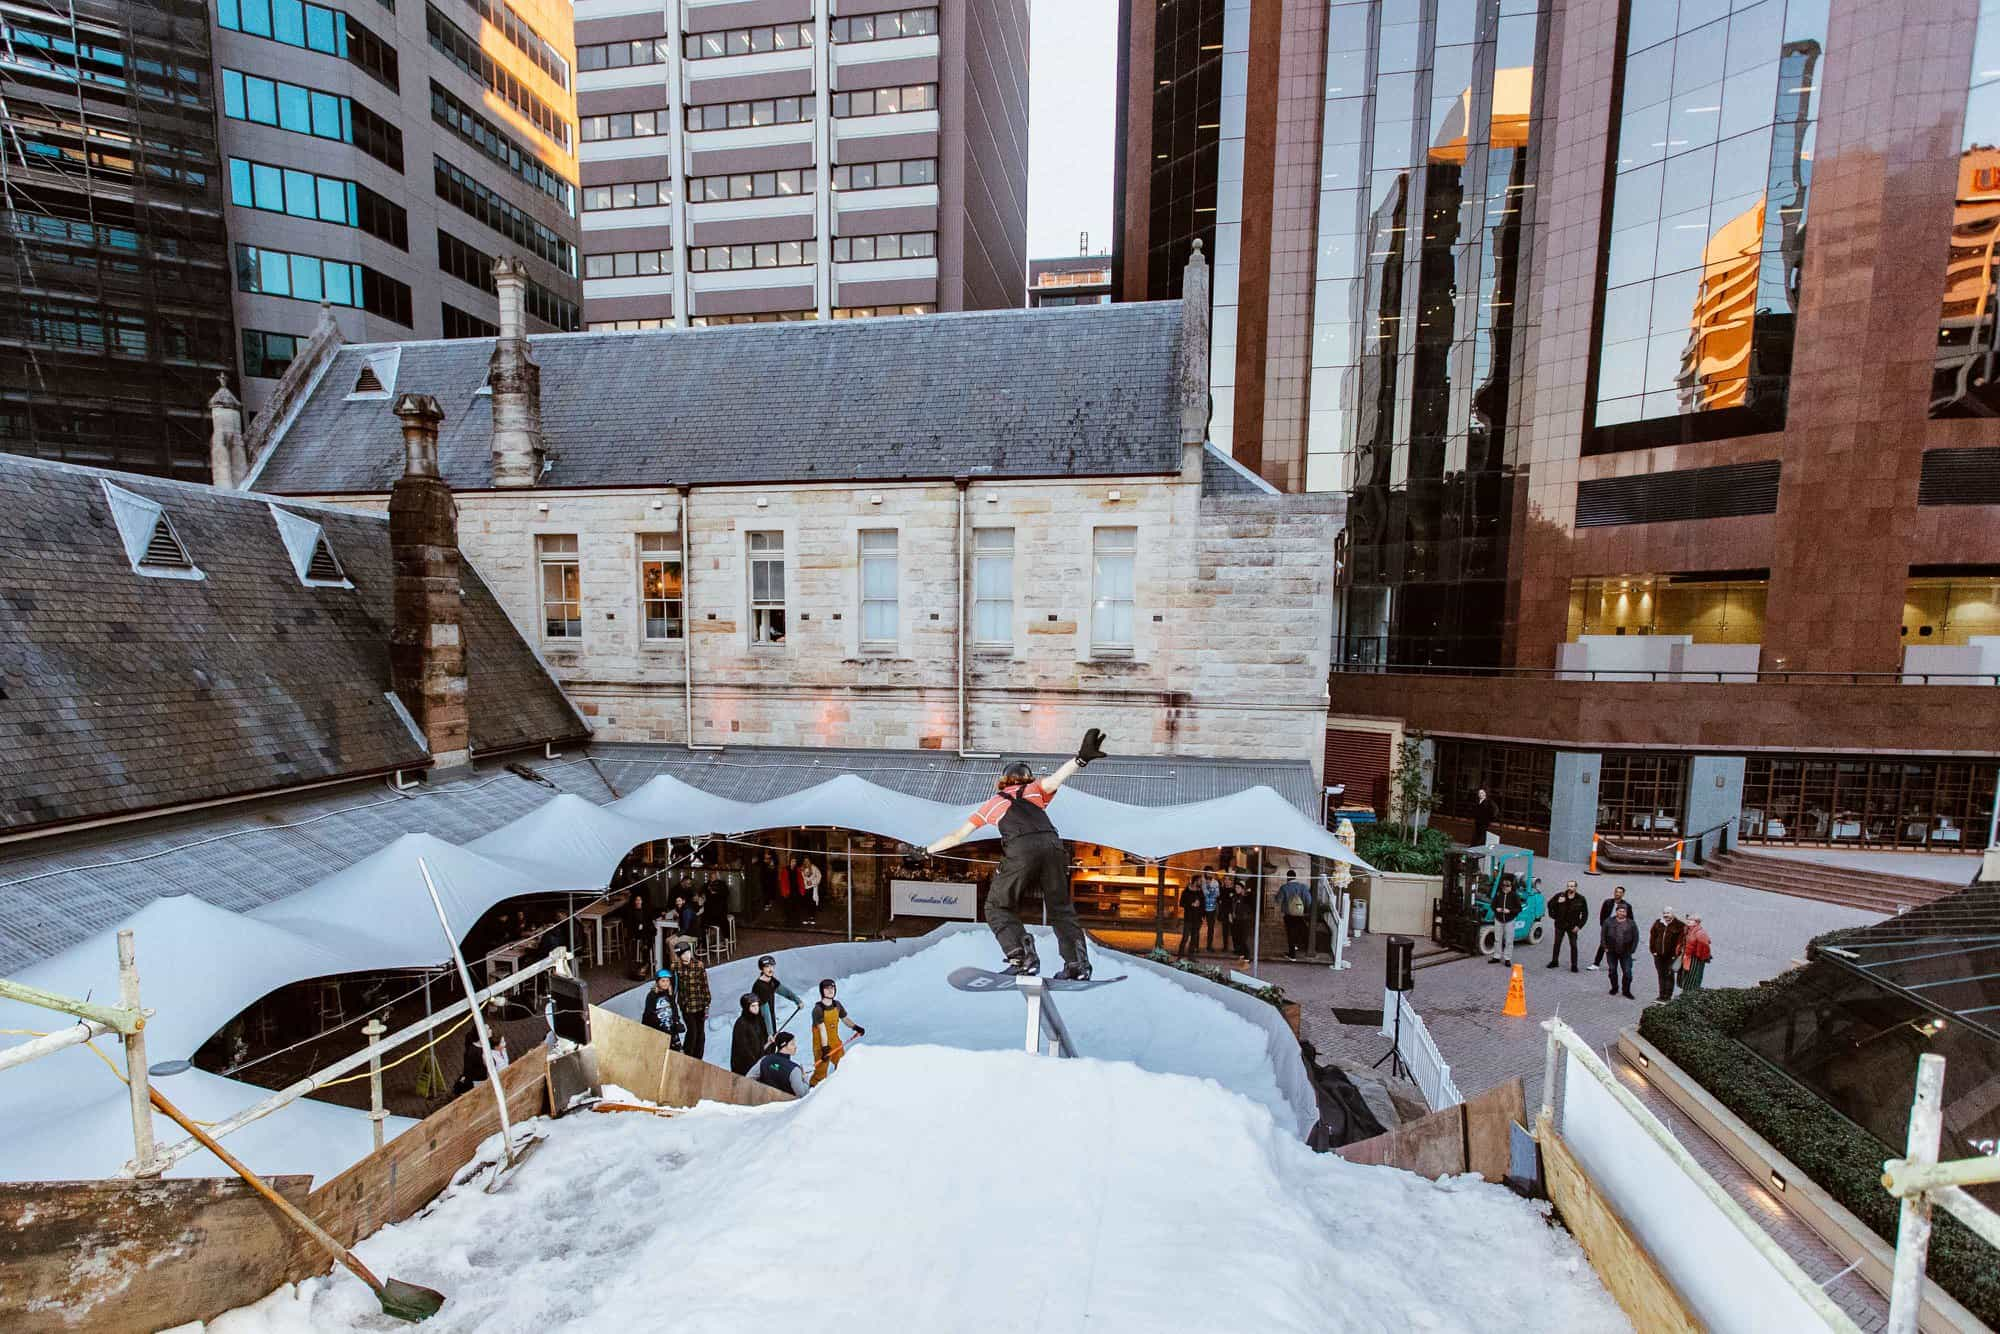 North Shore Snow Festival Greenwood Hotel